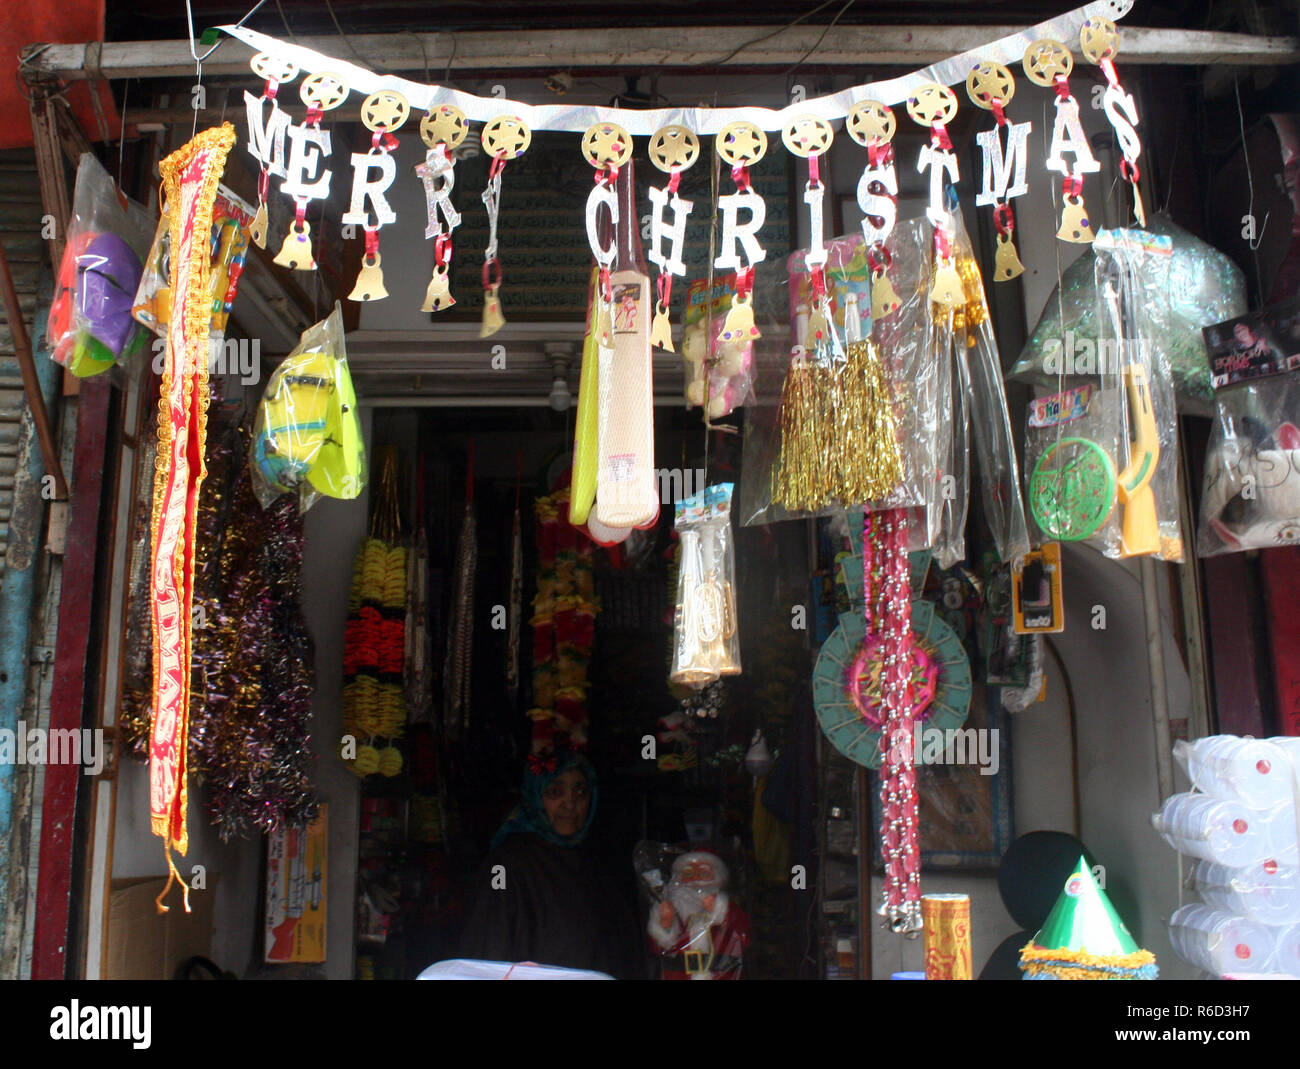 Srinagar, Kashmir. 5th Dec 2018. Santa Claus at shop. Christmas is being celebrated with religious fervor across Jammu and Kashmir on Tuesday 25th December. Churches across the Valley are decorated with buntings and lights.  Christmas is celebrated as commemoration of the birth of Jesus Christ universally by the Christian community Credit: sofi suhail/Alamy Live News - Stock Image